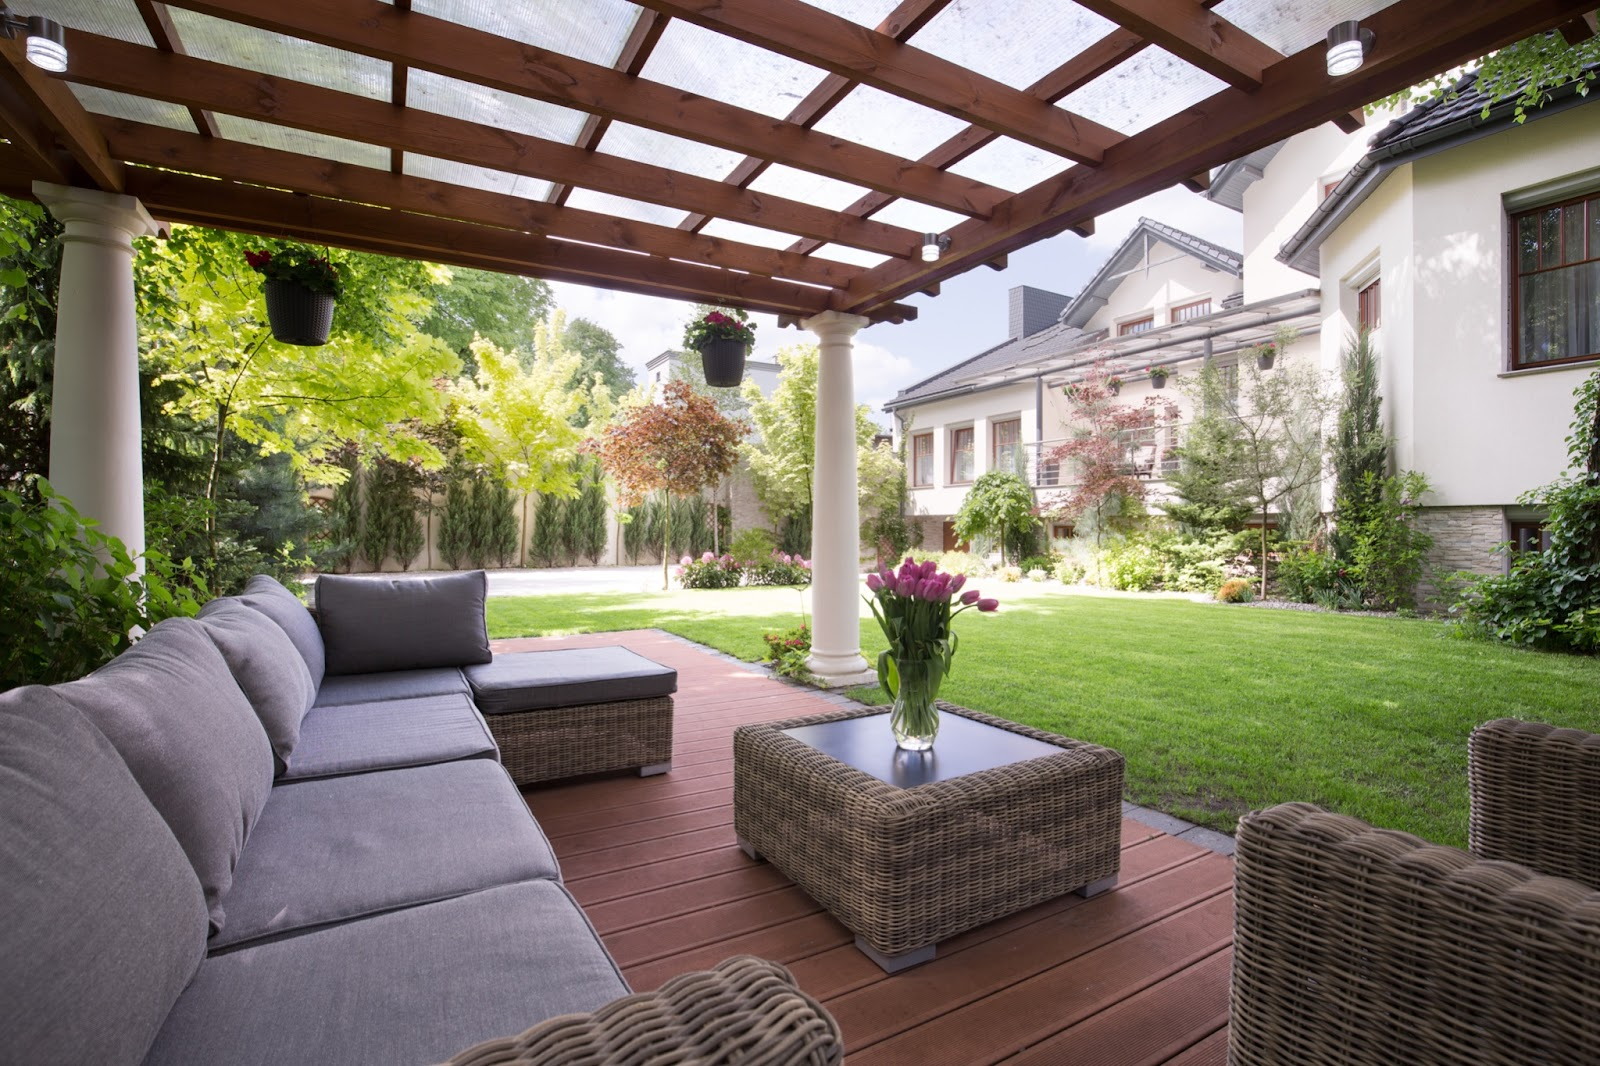 Luxury covered patio with view of house and yard